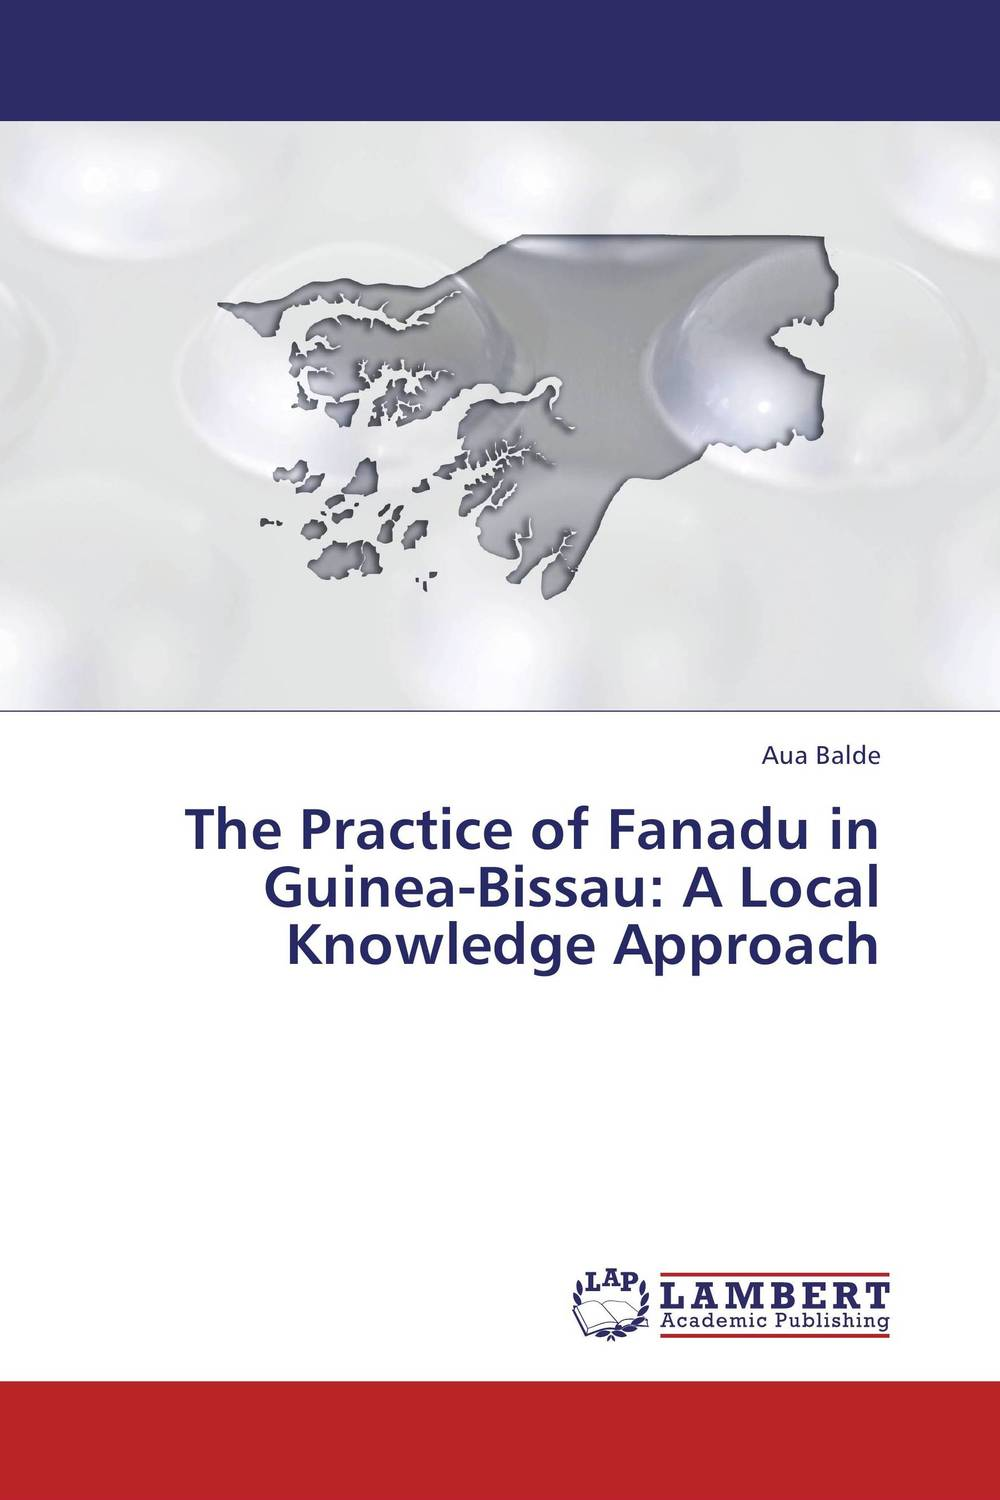 The Practice of Fanadu in Guinea-Bissau: A Local Knowledge Approach